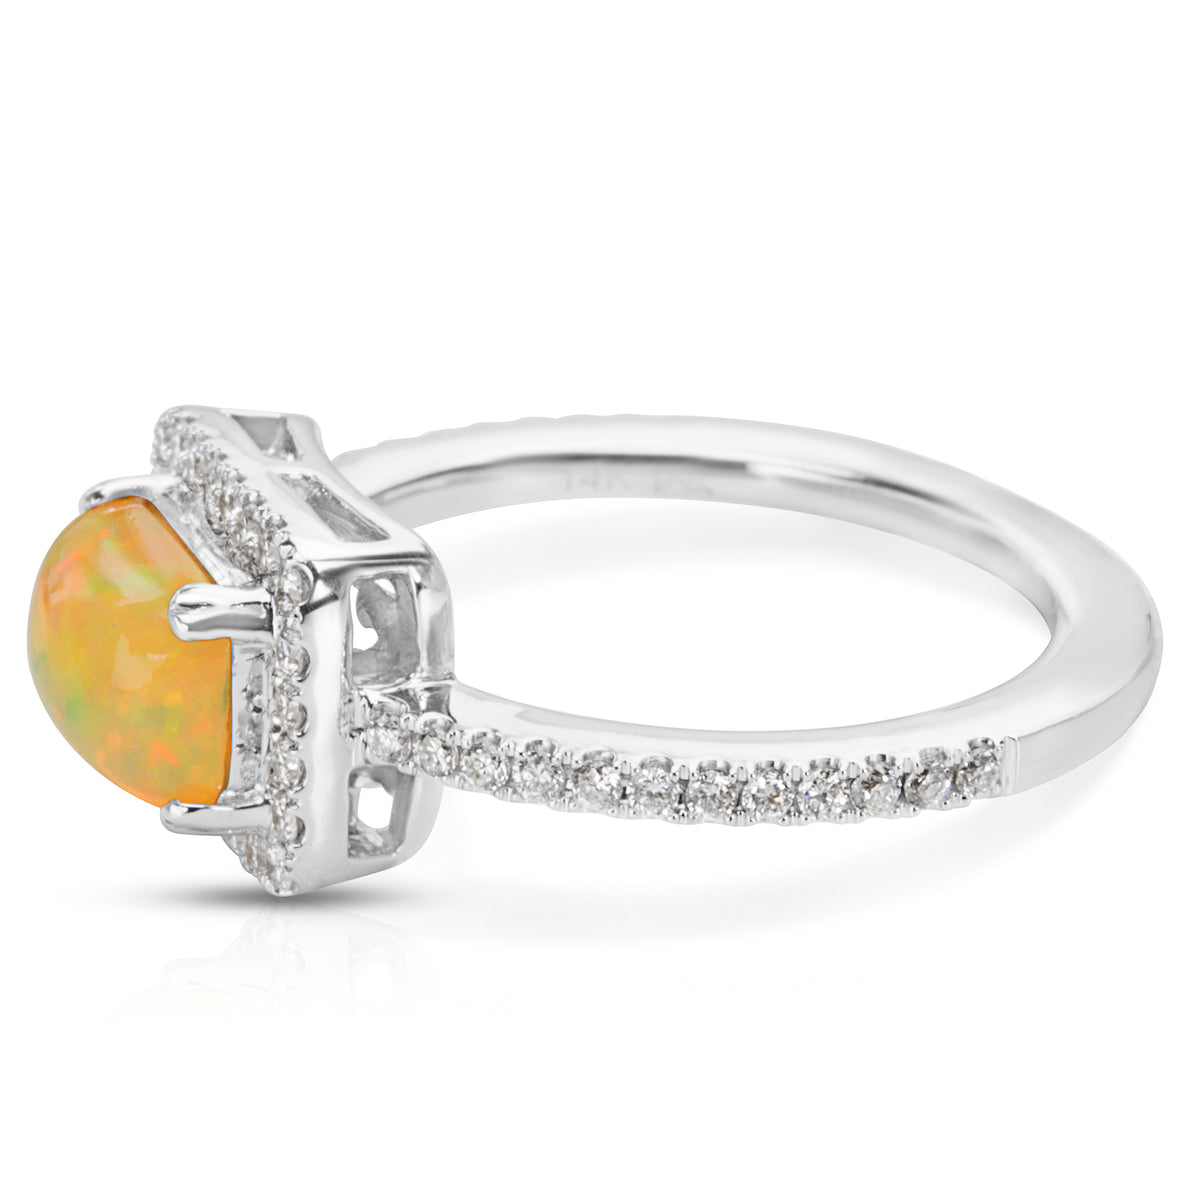 BRAND NEW Opal and Diamond Fashion Ring in 14K White Gold (0.34 CTS)